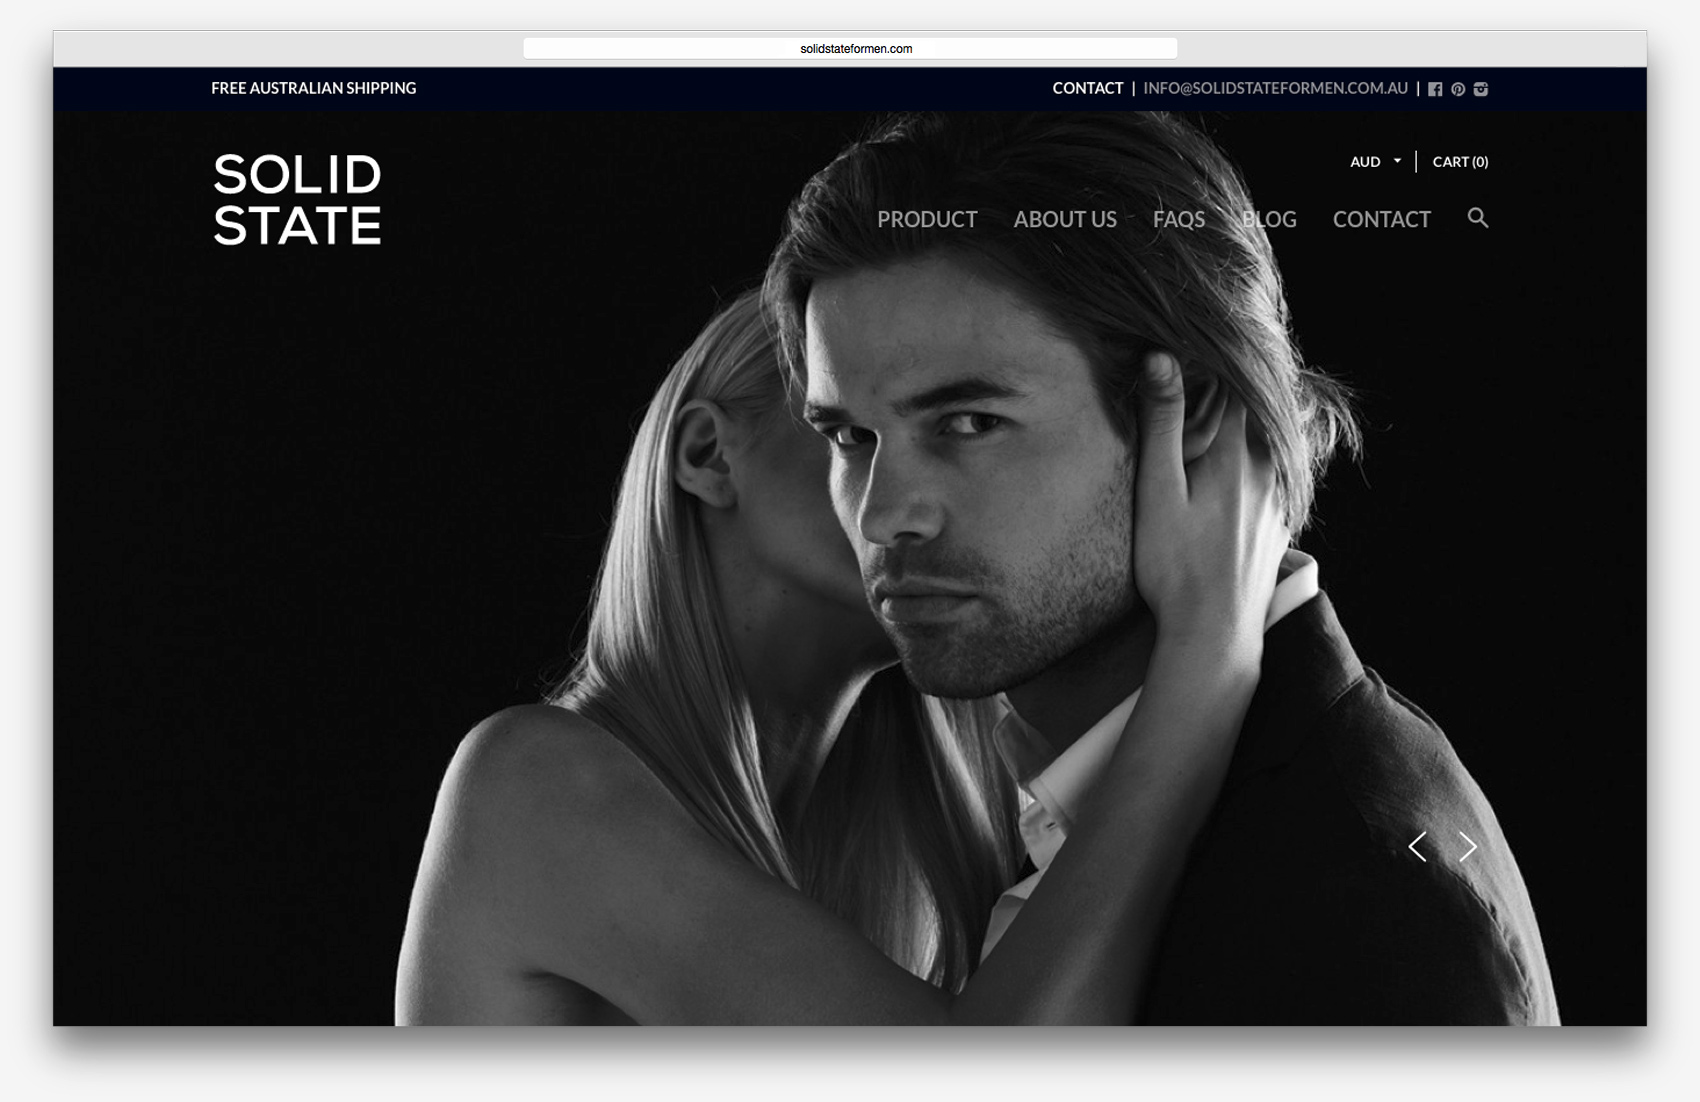 Solid State Cologne - Branding, packaging and website design